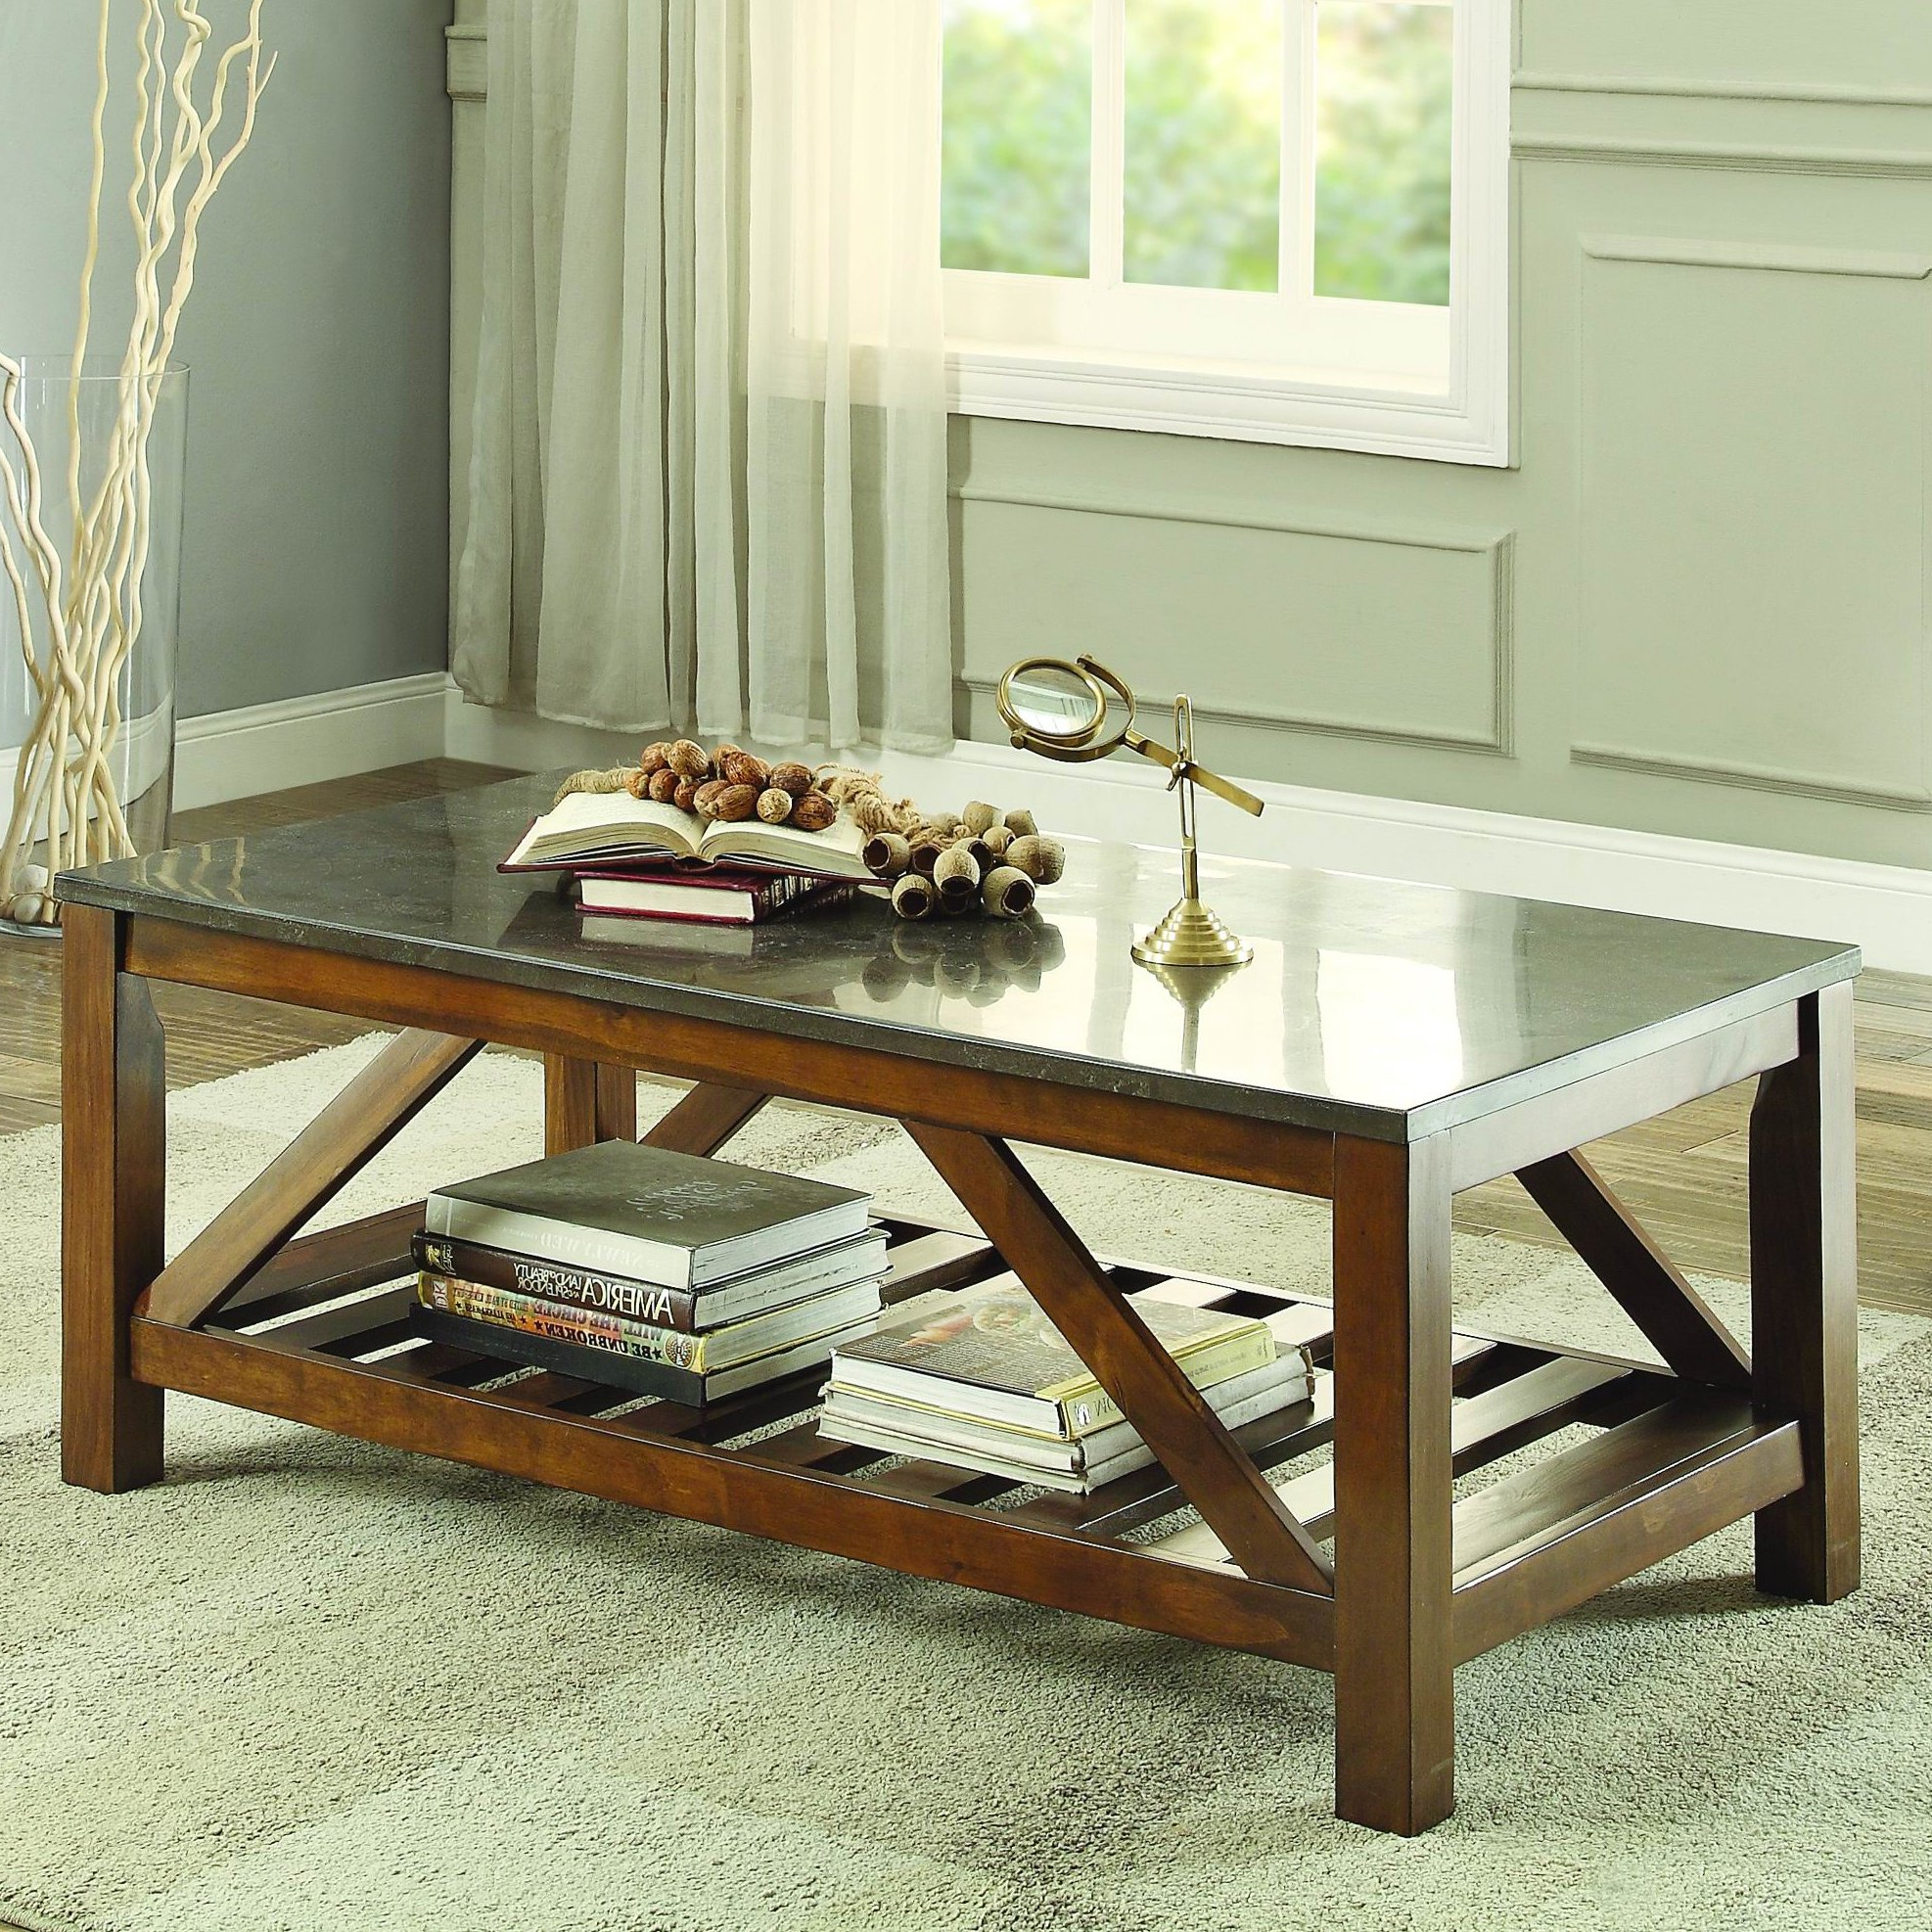 2019 Bluestone Rustic Black Coffee Tables Intended For Homelegance Ashby Coffee Table, Bluestone Marble & Reviews (View 8 of 20)